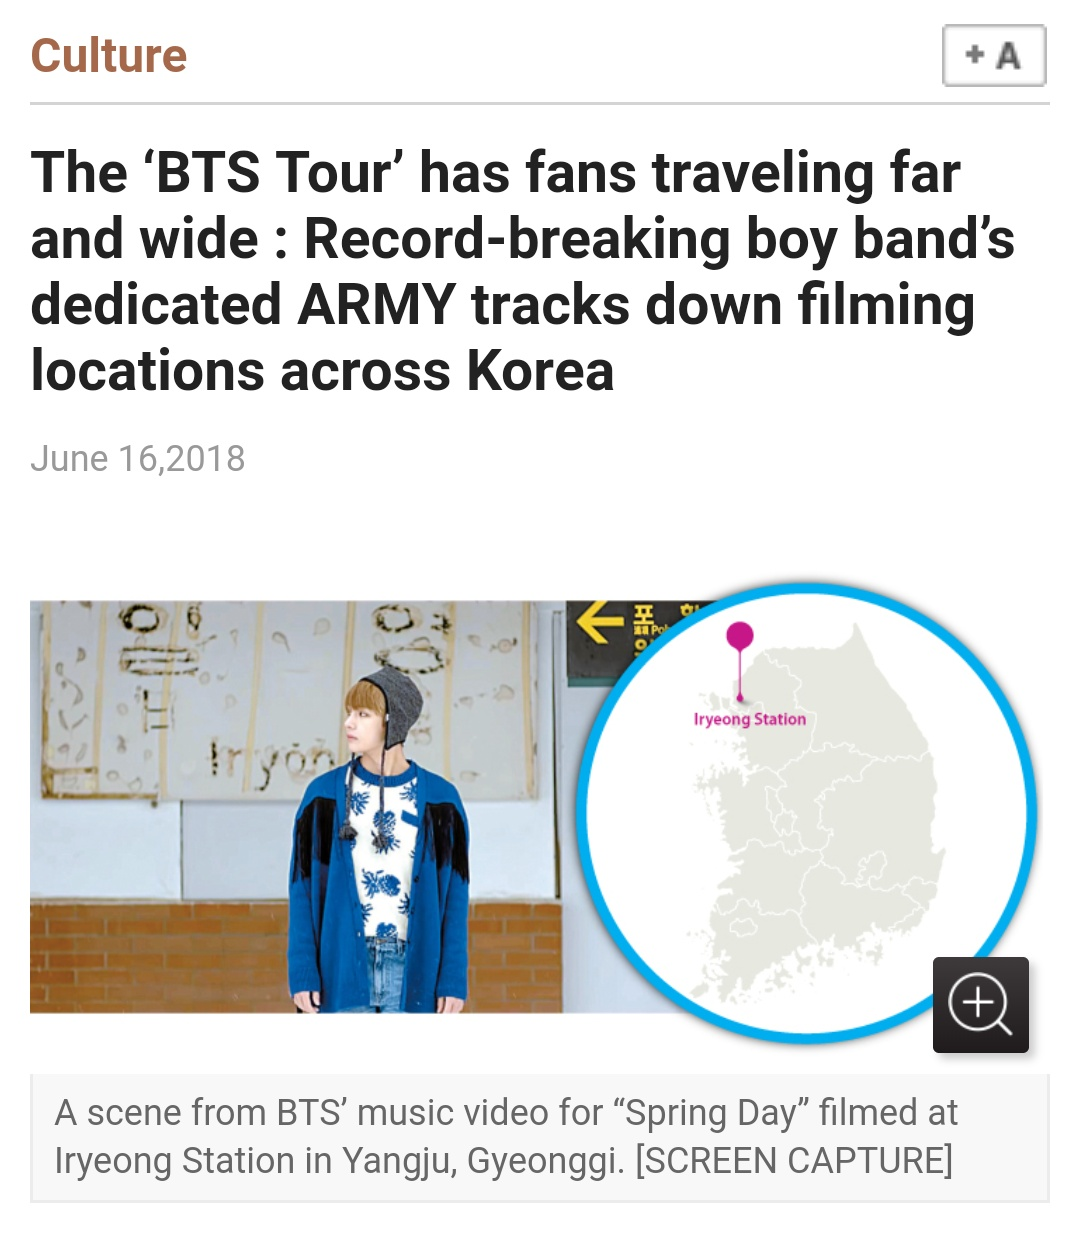 News] The 'BTS Tour' has fans traveling far and wide